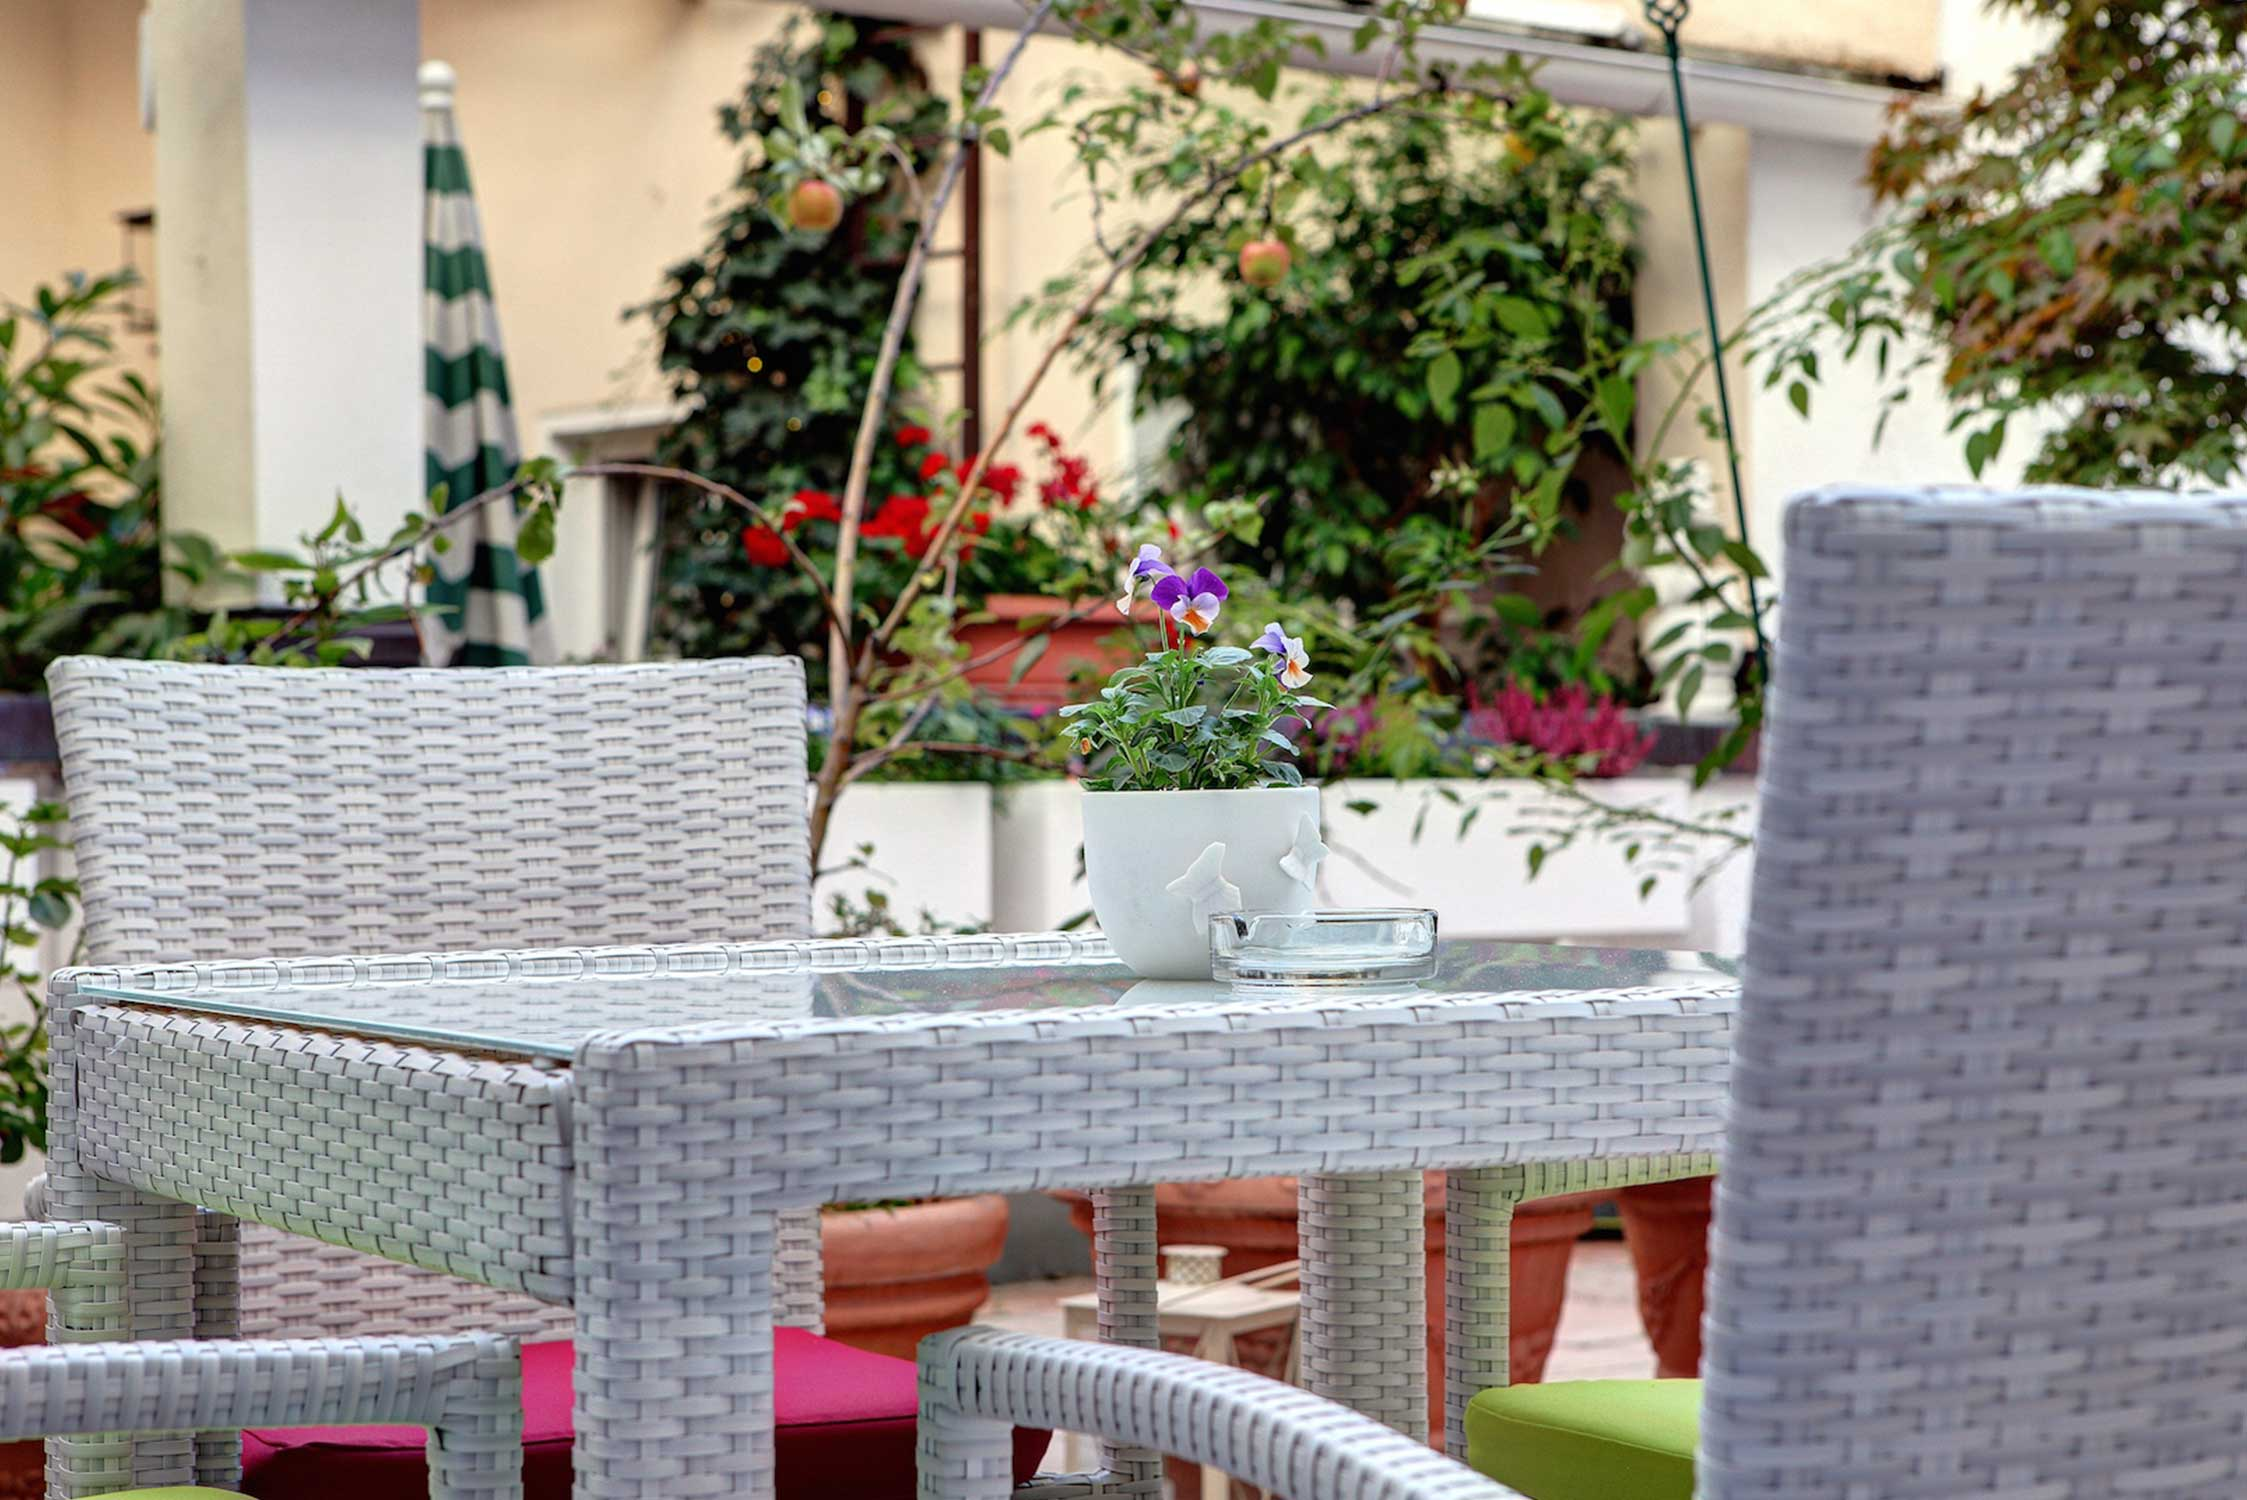 Hotel Condor, detail breakfast garden view